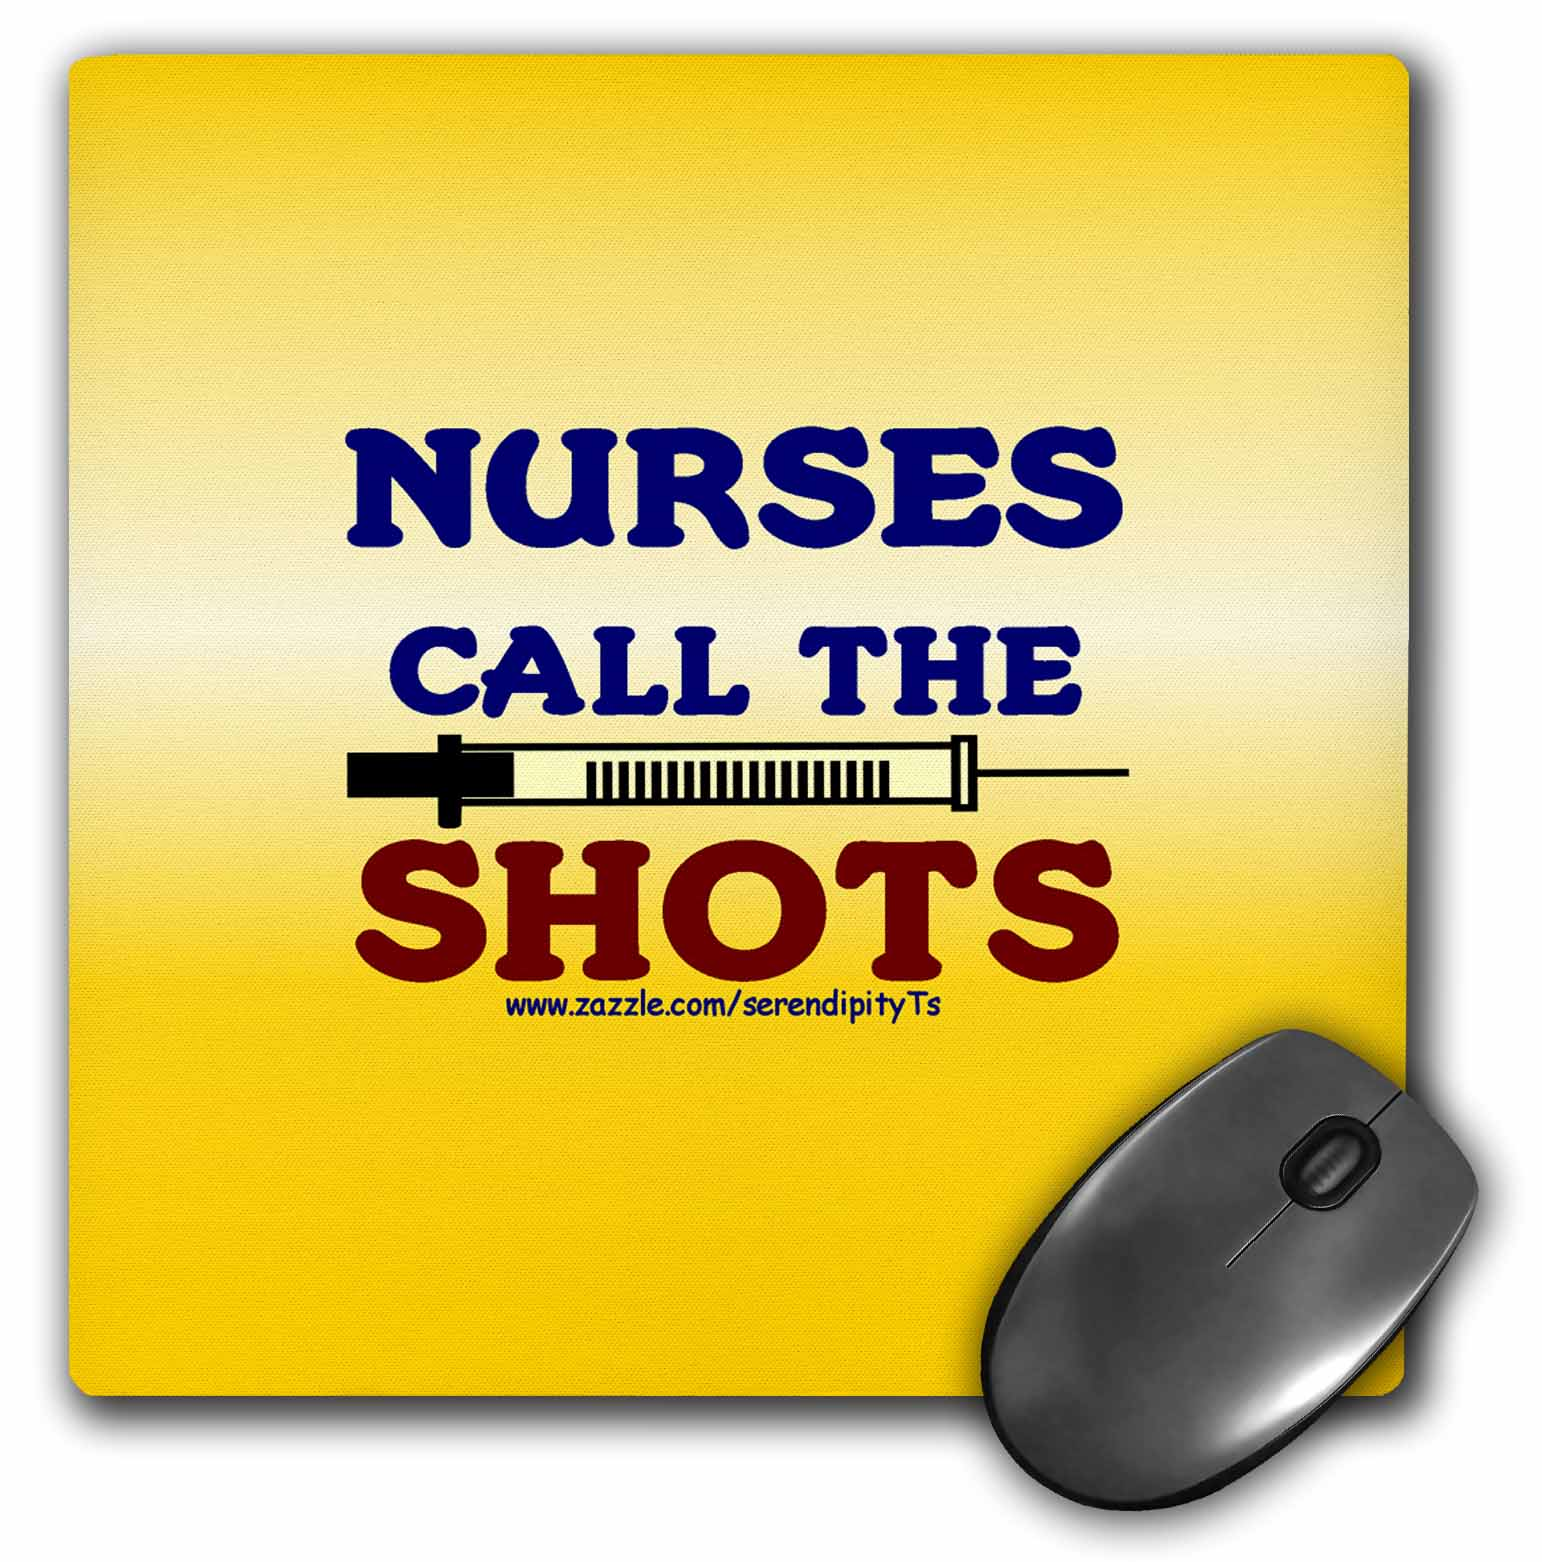 3dRose Nurses Call The Shots, Mouse Pad, 8 by 8 inches